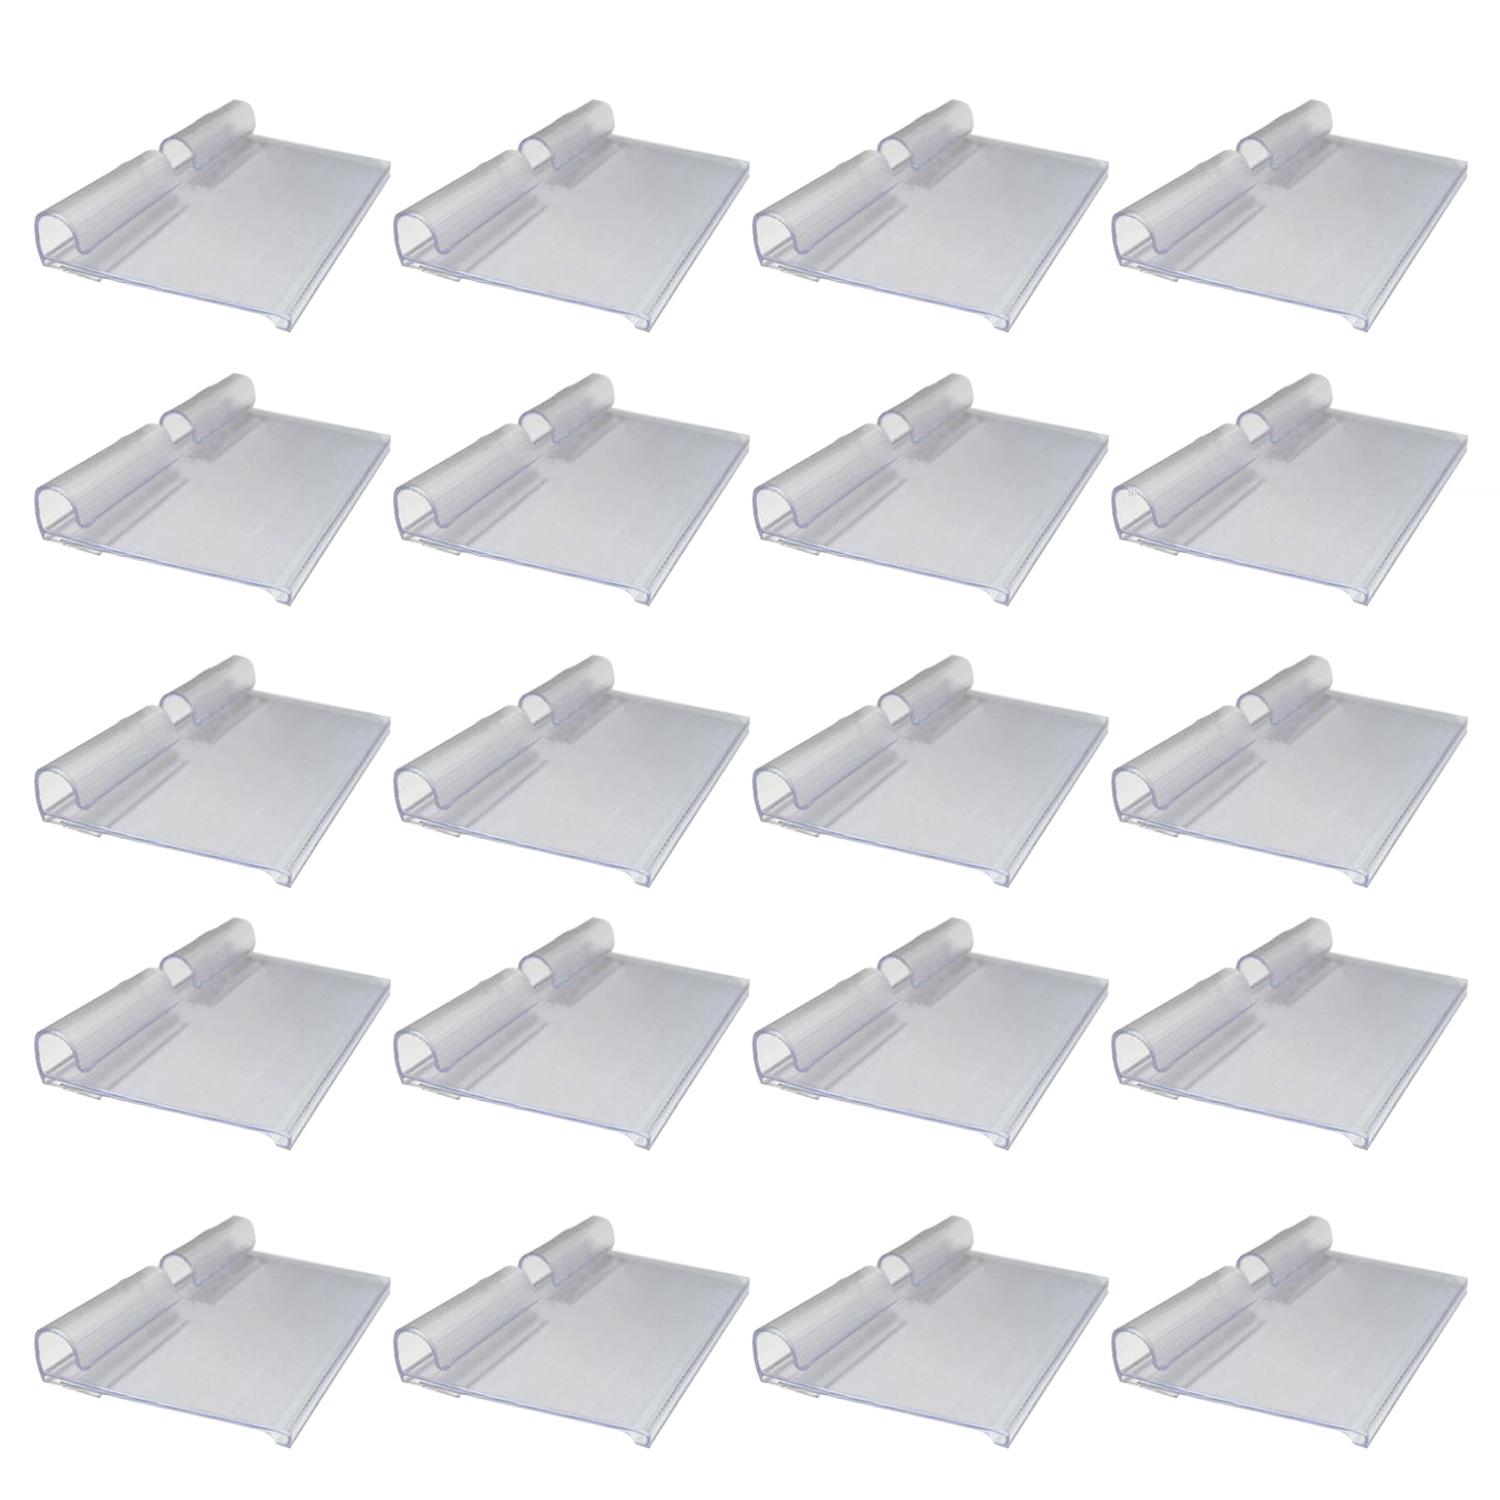 50pcs Translucent Plastic Wire Shelf Price Label Holders Merchandise Sign Display Holder For Shop Office Market By Elek.